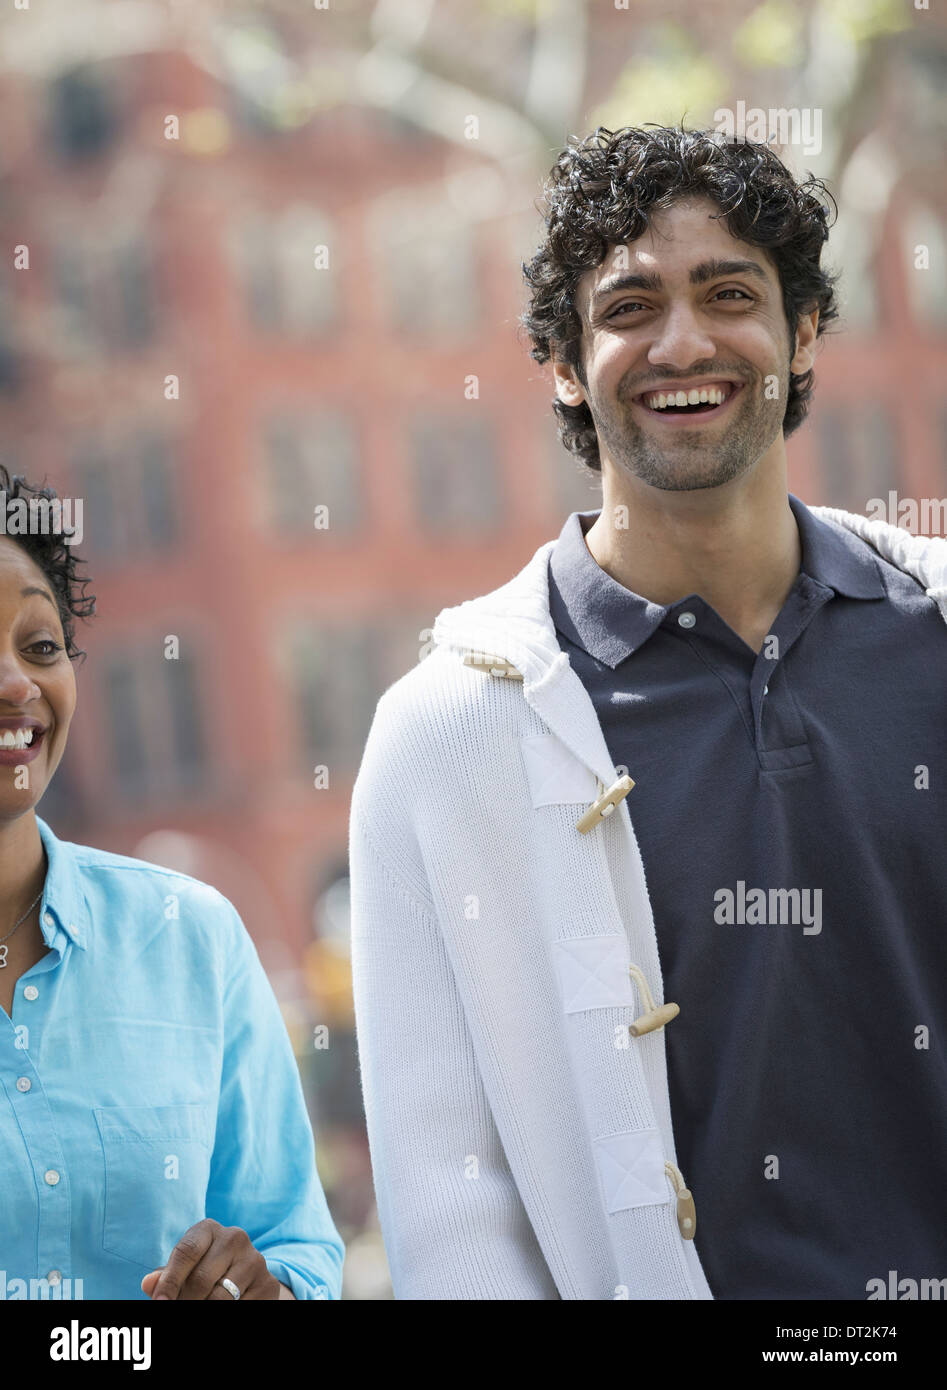 park A man and woman side by side smiling - Stock Image